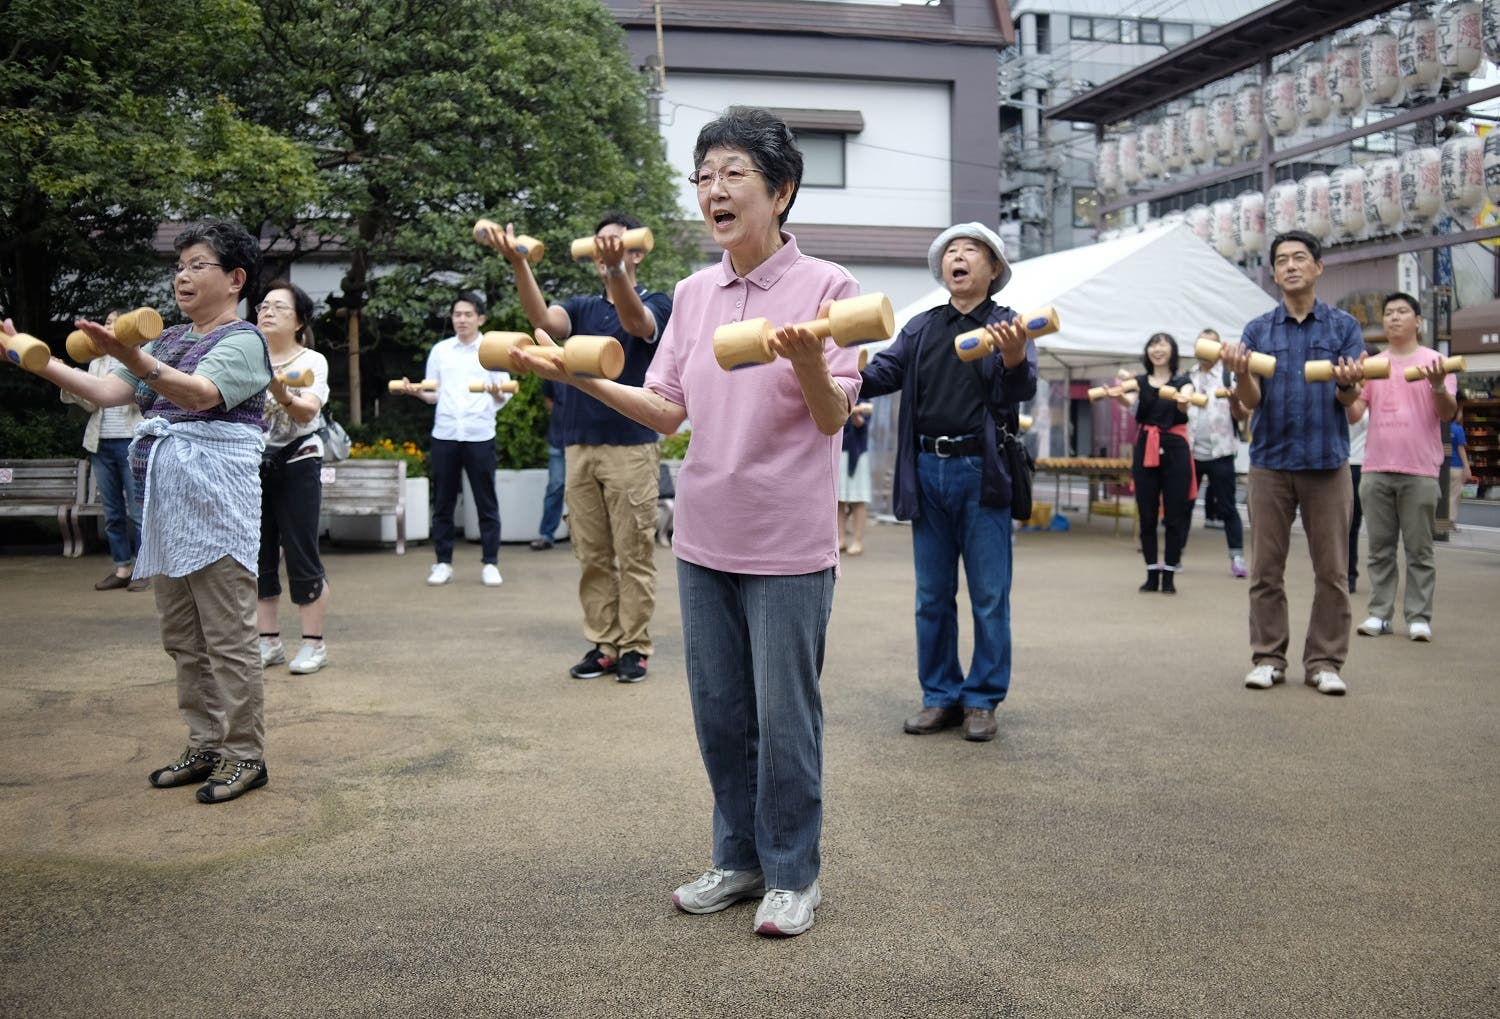 Elderly people work out with wooden dumb-bells in the grounds of a temple in Tokyo on September 19, 2016, to celebrate Japan's Respect for the Aged Day. (AFP)